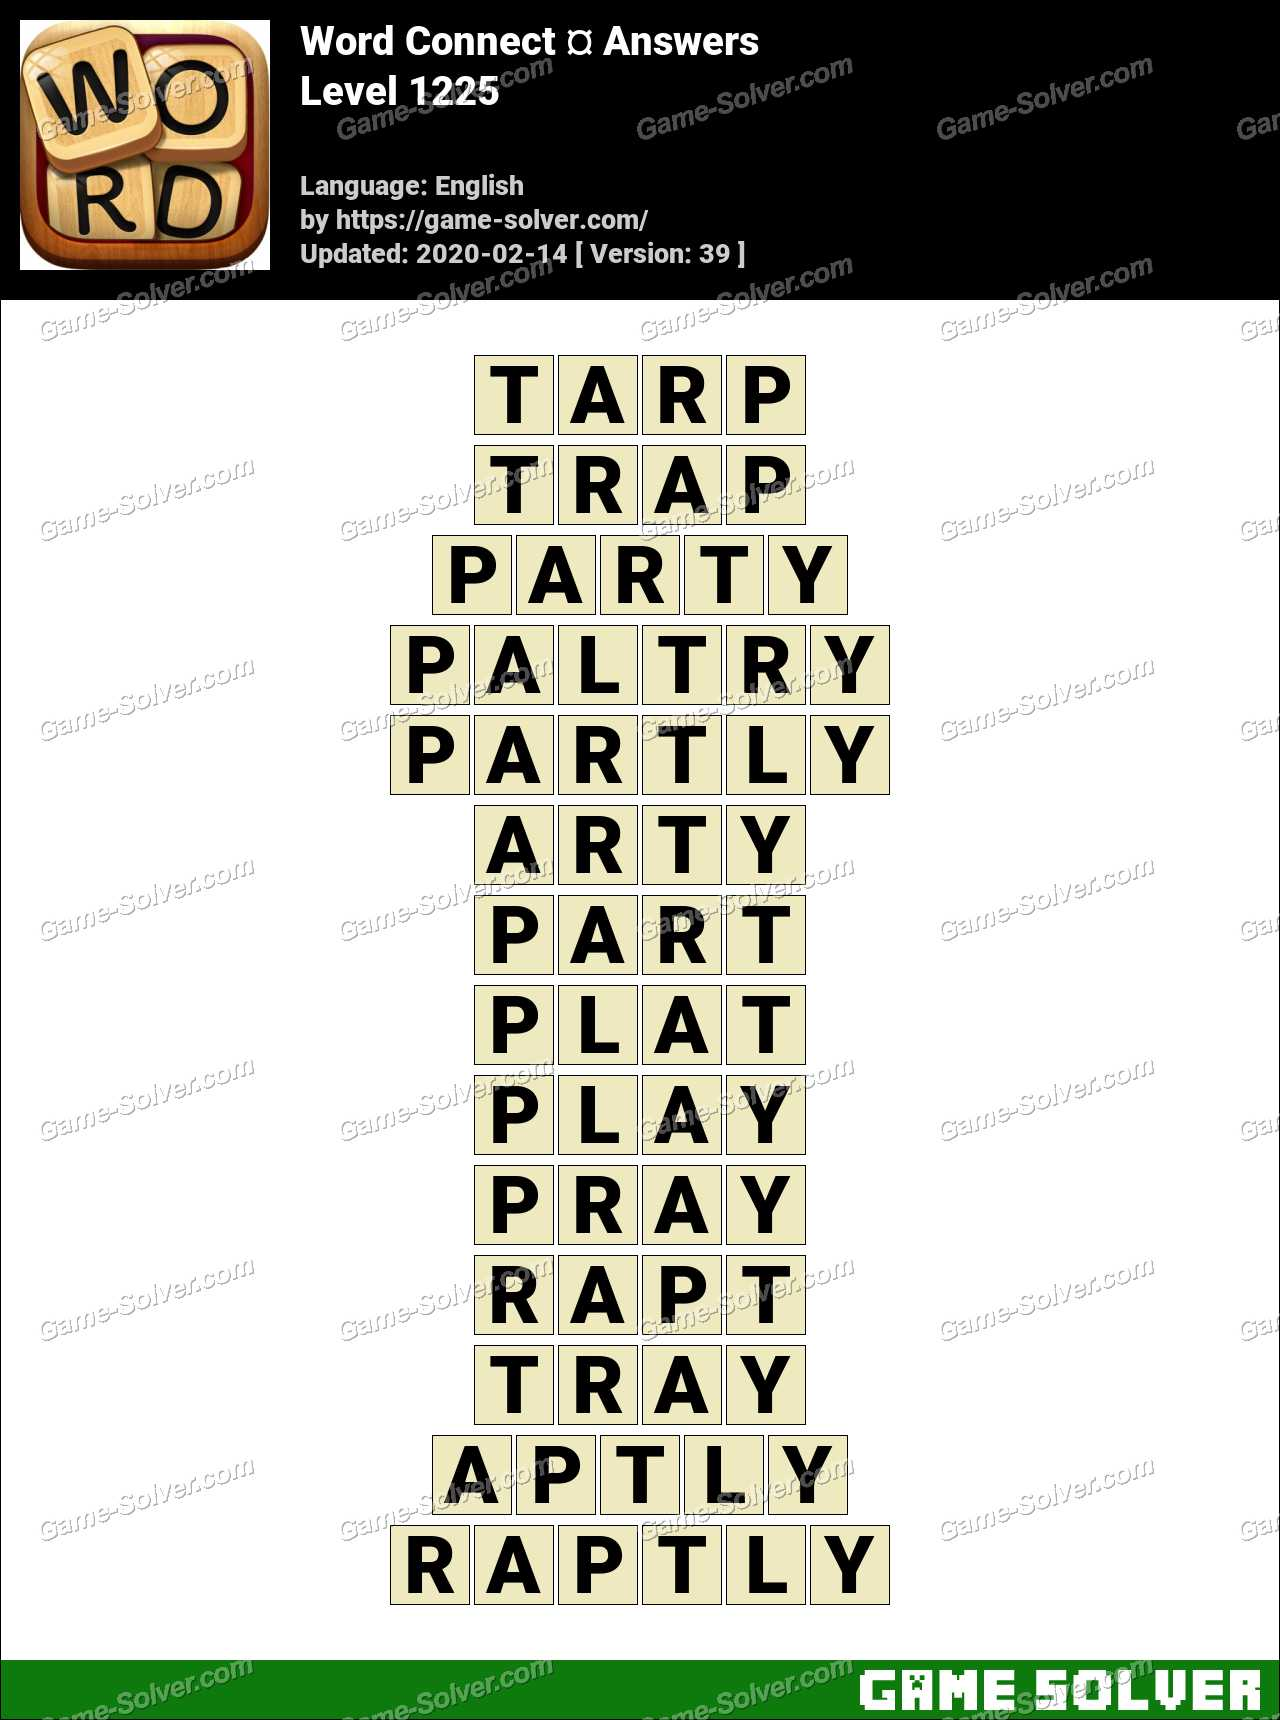 Word Connect Level 1225 Answers